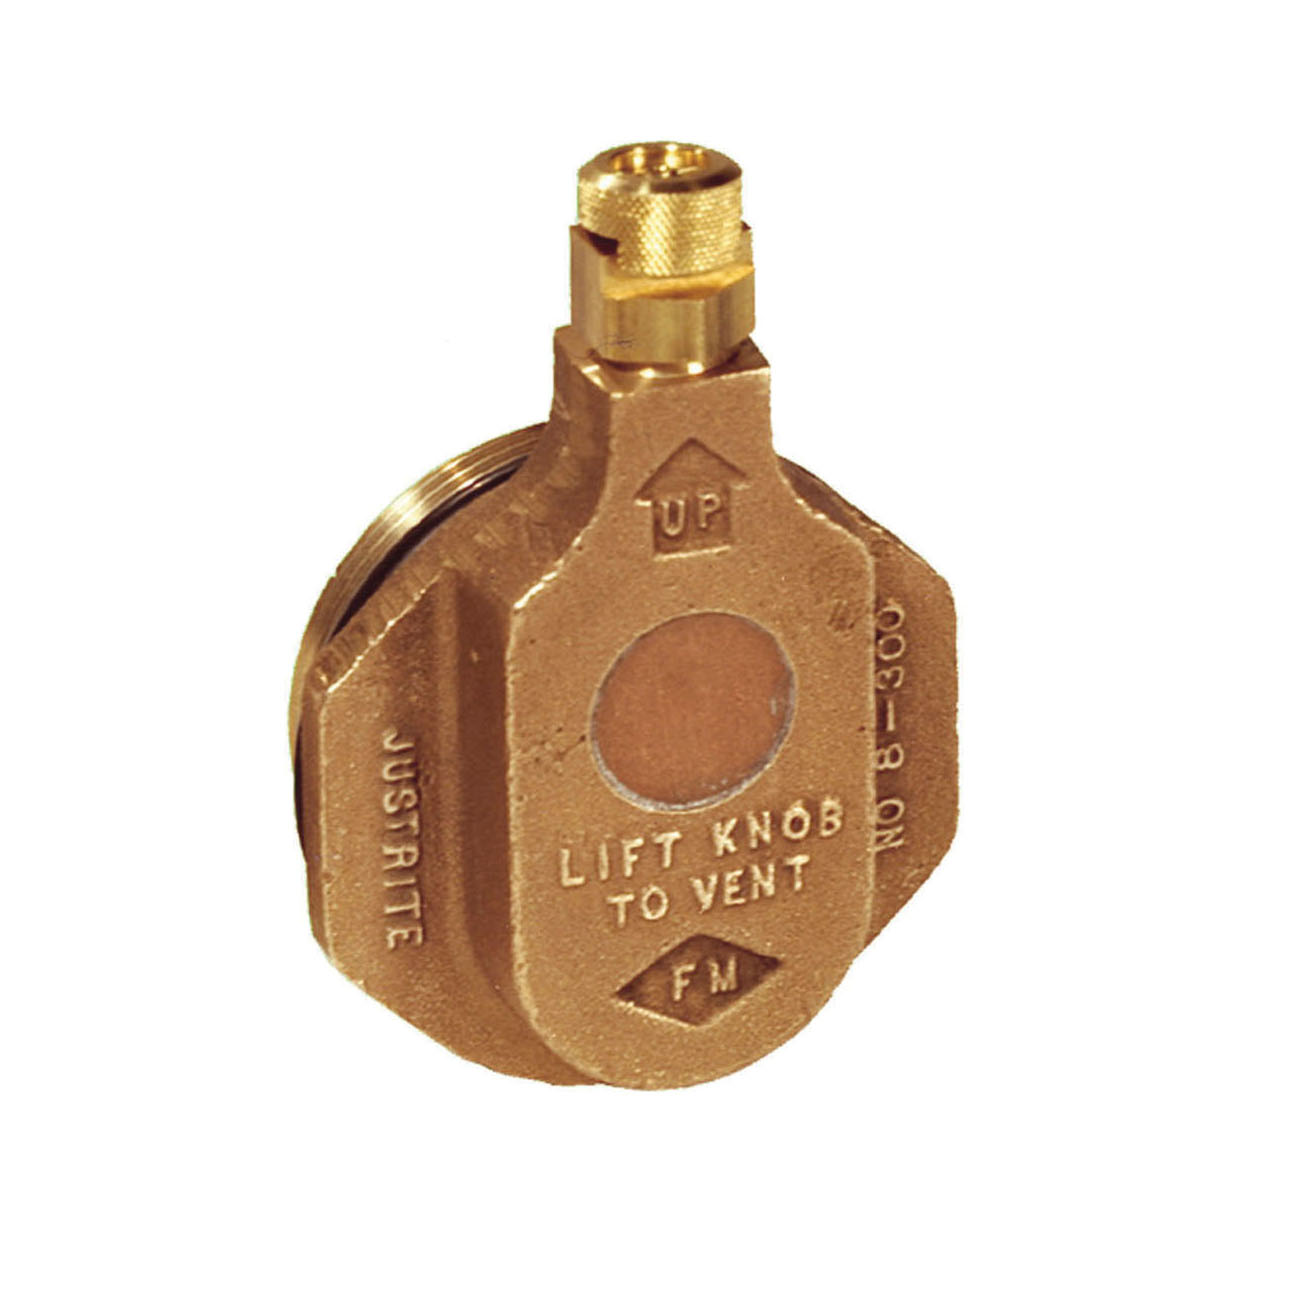 Justrite® 08204 Safety Fill Vent With 6 in Flame Arrester, 2 in NPT/NPS Bung, Brass, Brass